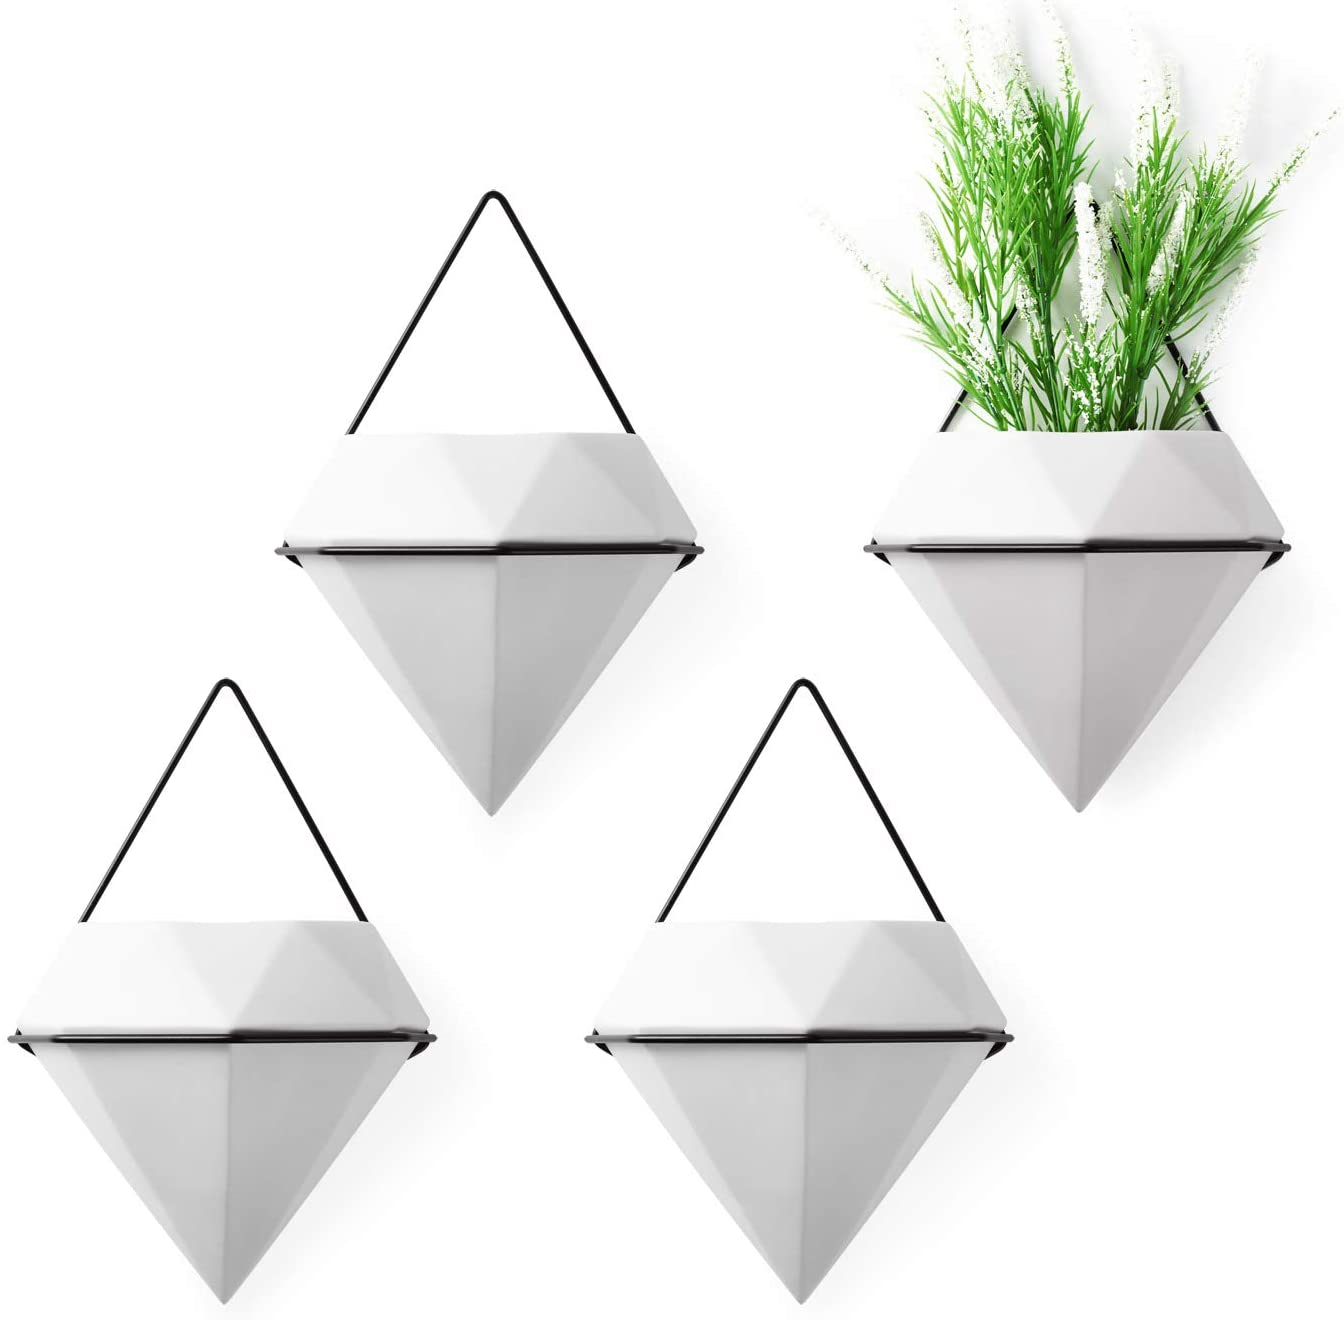 T4U Diamond Wall Planter Geometric Wall Vases White, Set of 4 Ceramic Mounted Succulent Air Plant Flower Pots Cactus Faux Plants Containers White Modern Indoor Decor for Home and Office